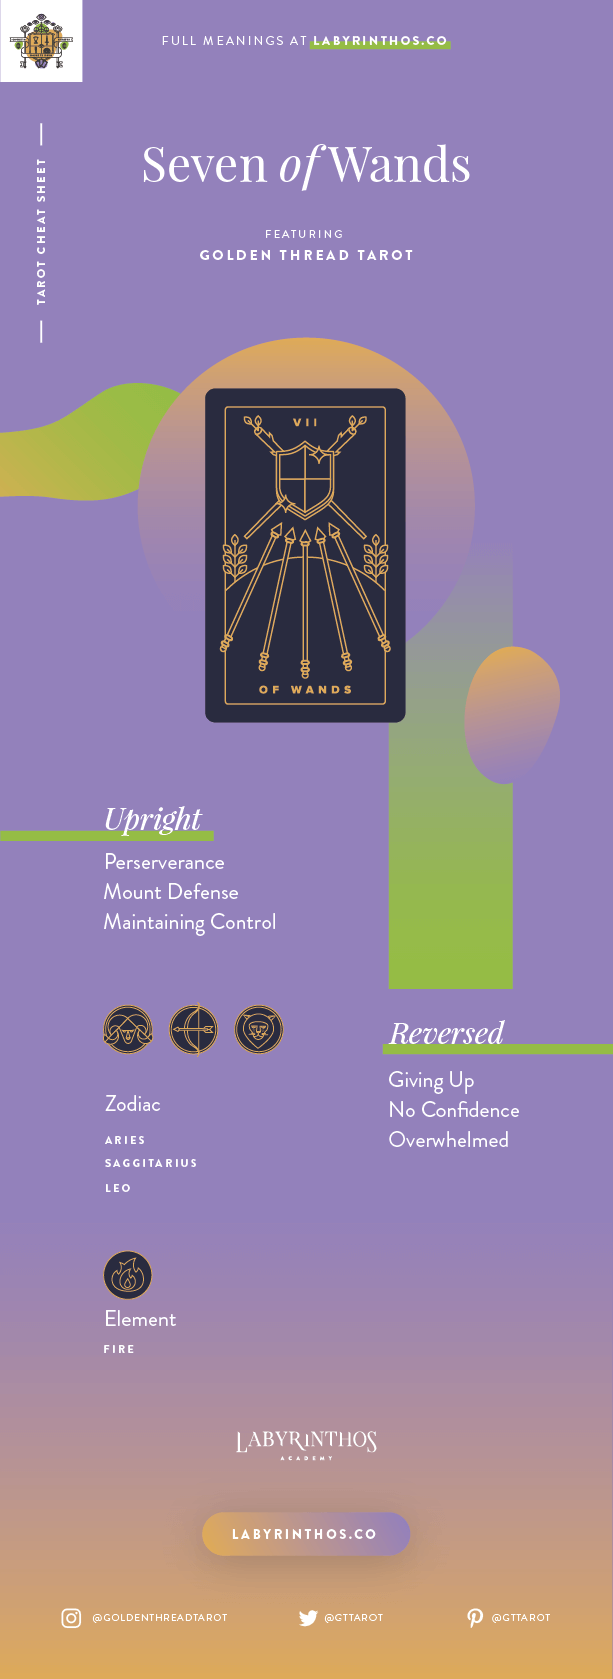 Seven of Wands Meaning - Tarot Card Meanings Cheat Sheet